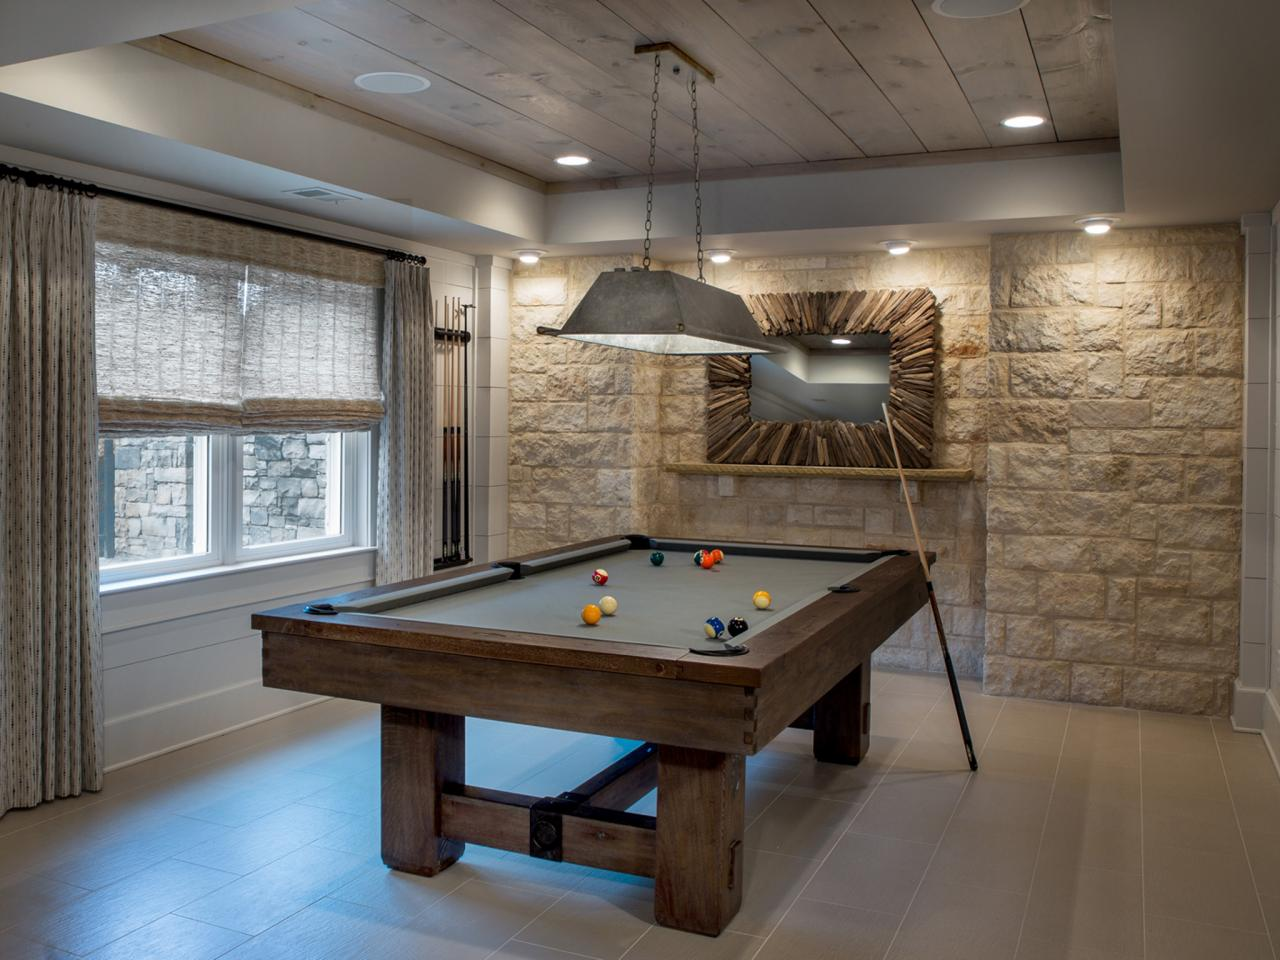 Game room design game room ideas gallery decorating and design ideas for interior rooms hgtv Room decorating games for adults